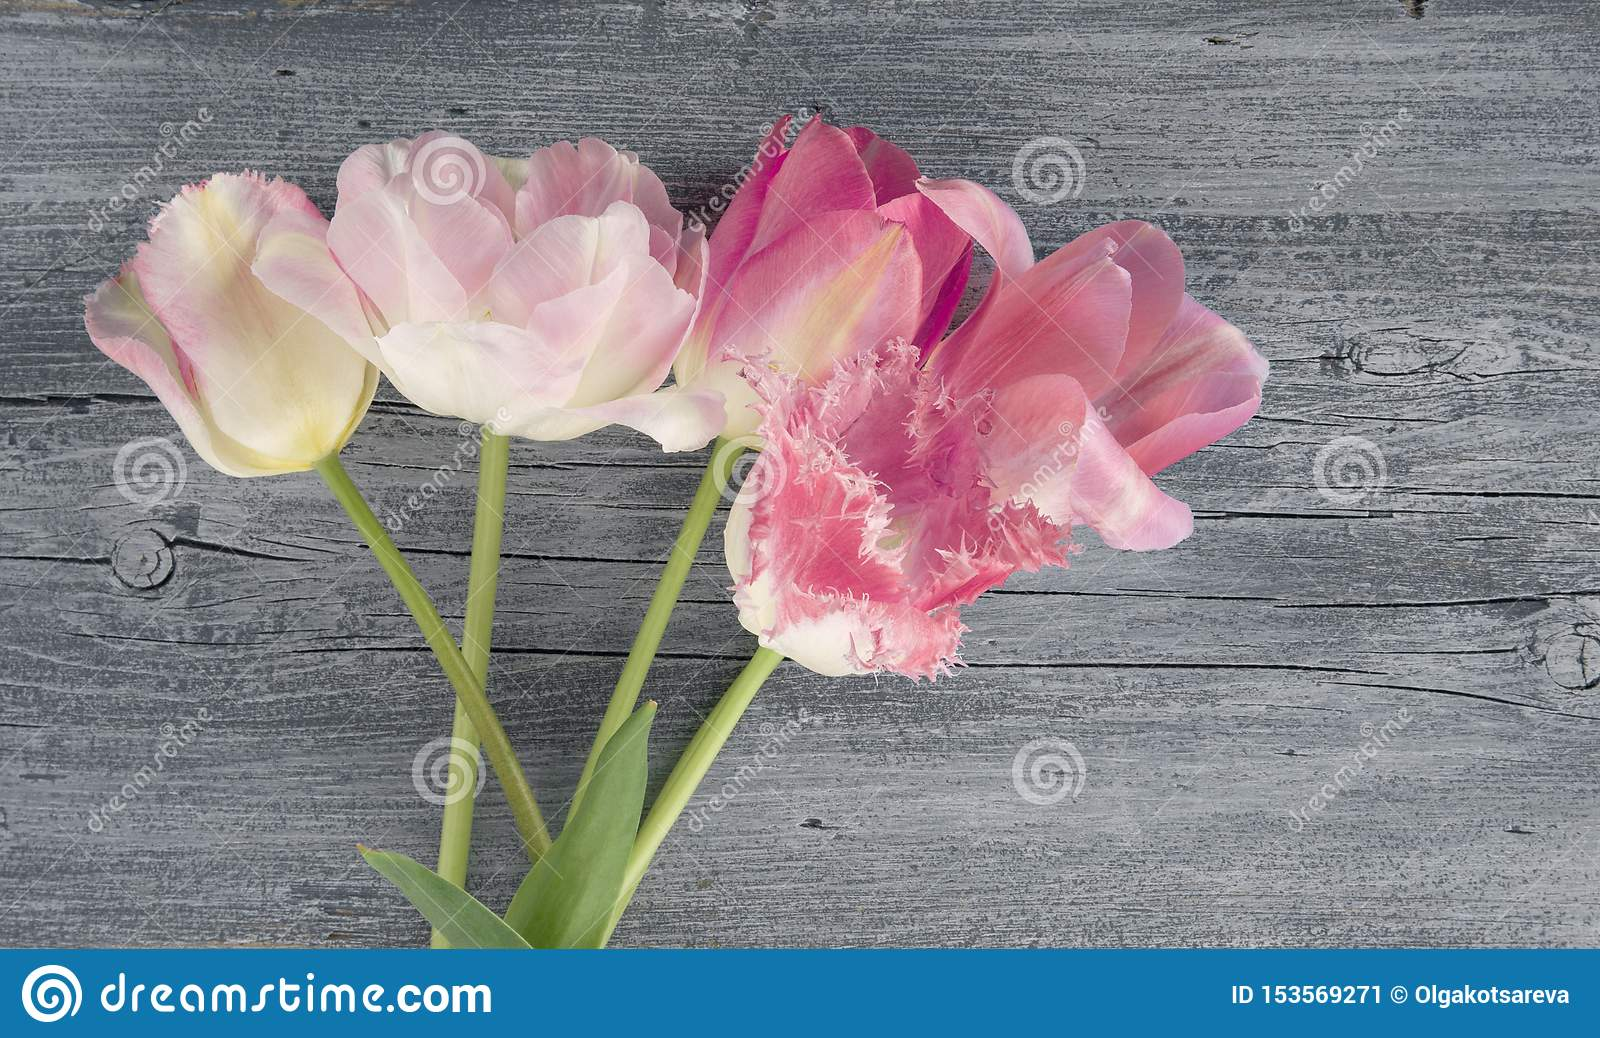 Pink tulips flowers bouquet on wooden rustic blue table background for mothers day card or holiday, copy space, top view